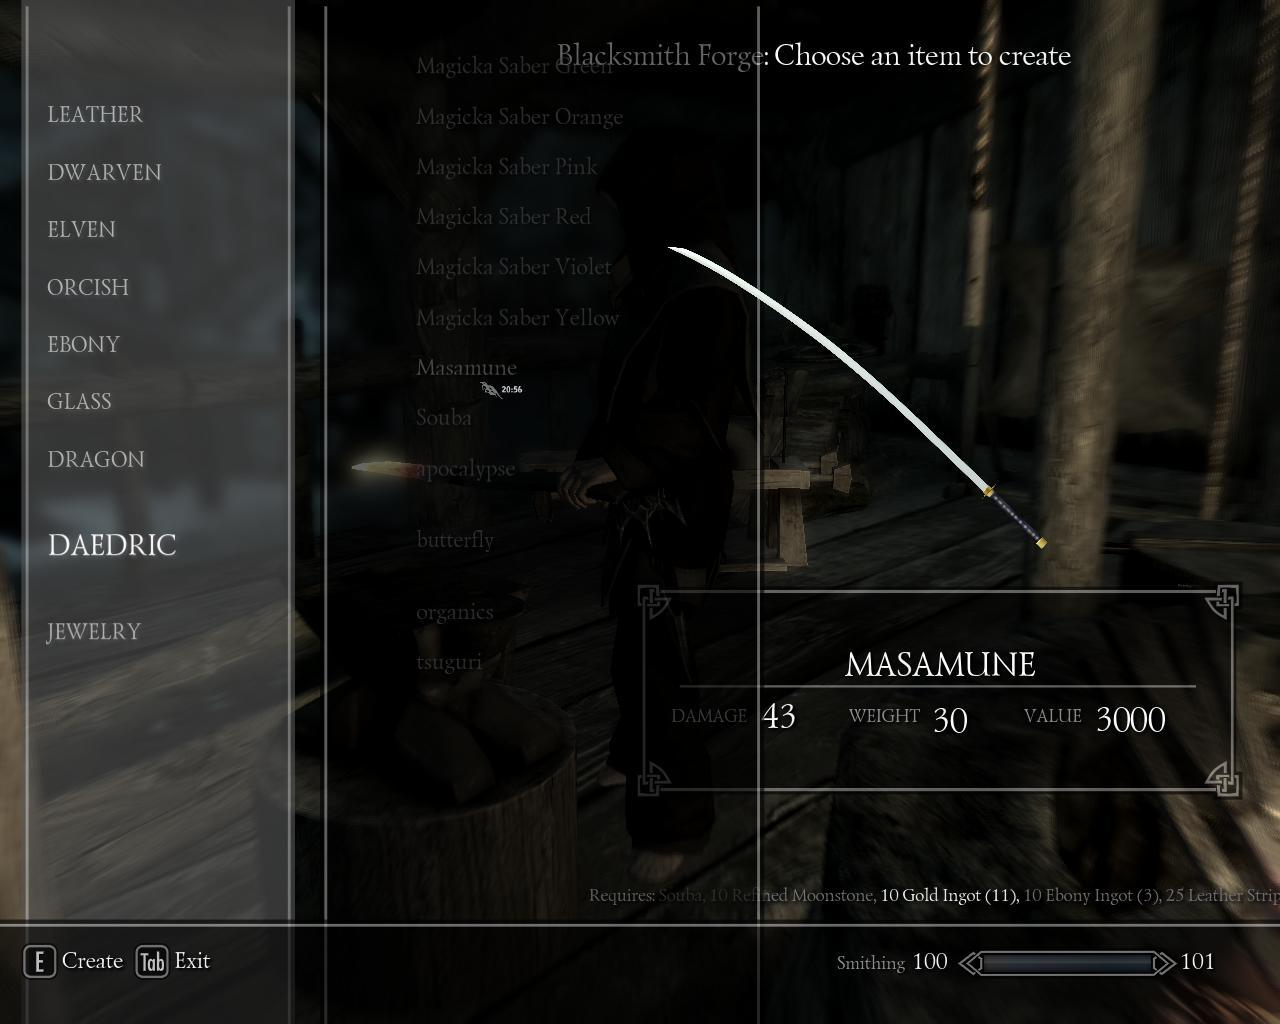 Images - ff7 blades at the forge - Mods - Projects - SkyrimForge